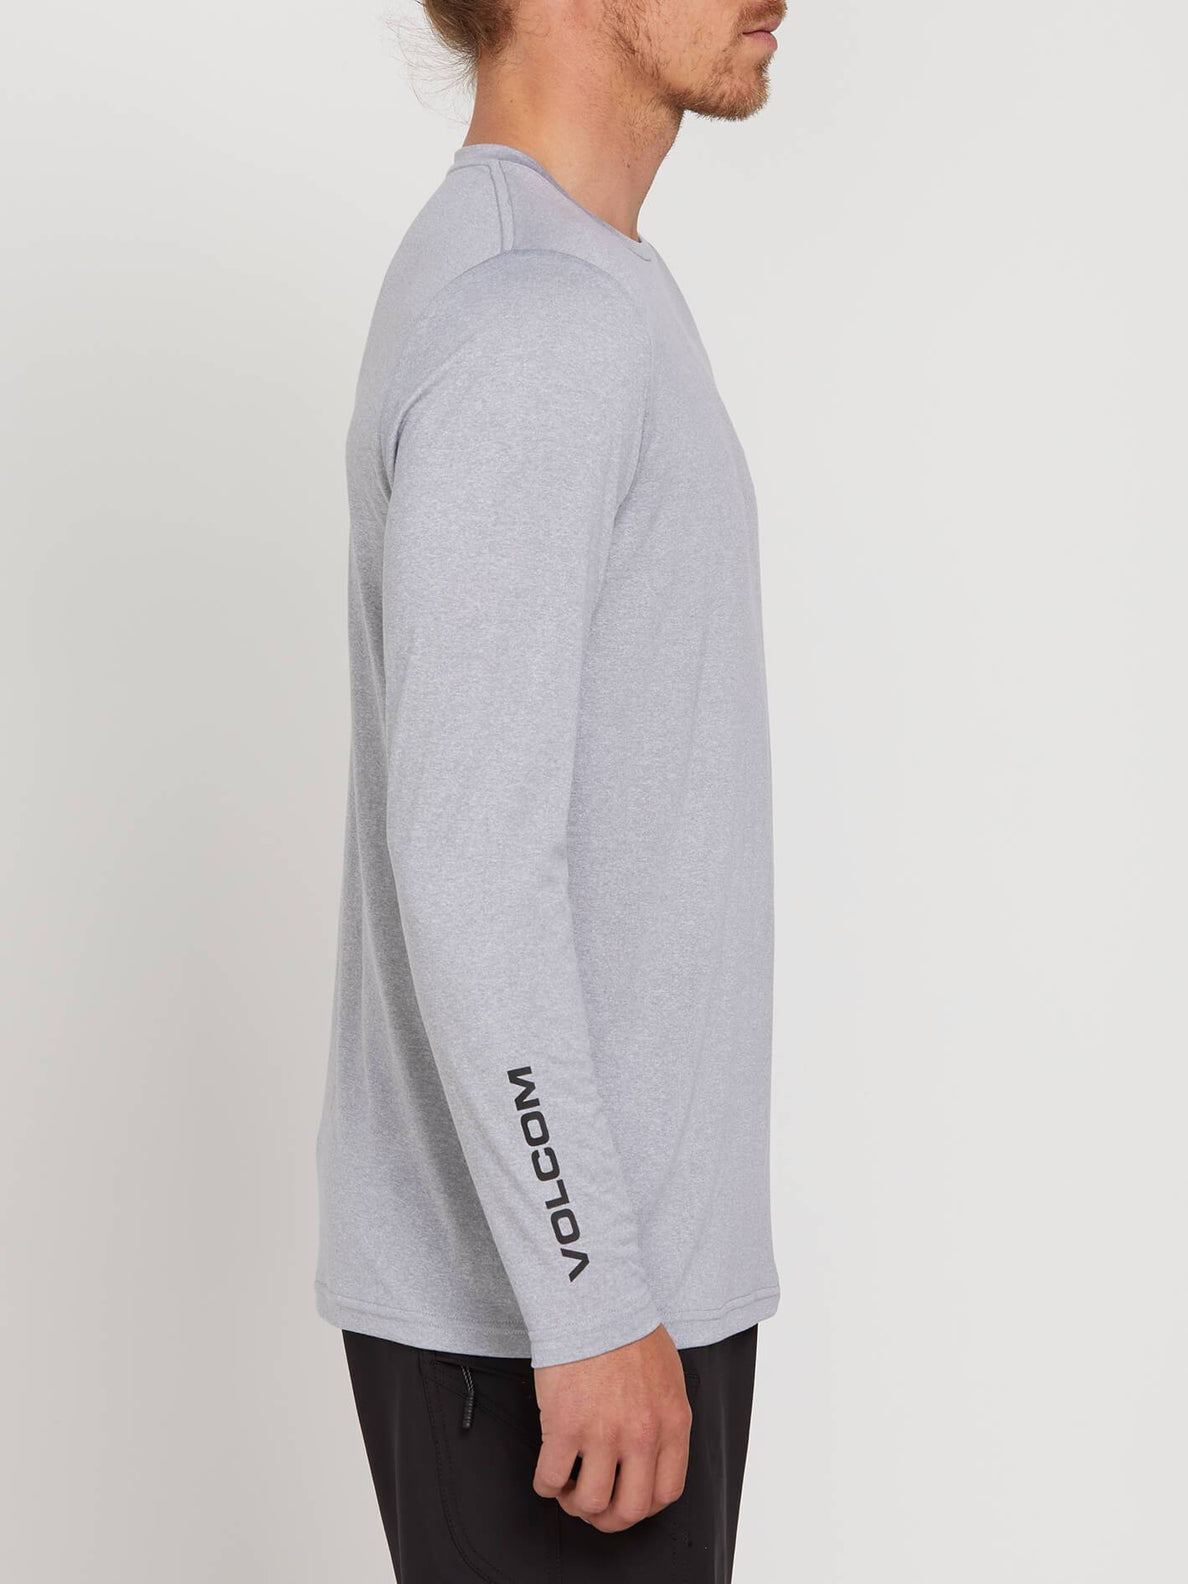 Lido Heather Long Sleeve Rashguard In Pewter, Alternate View